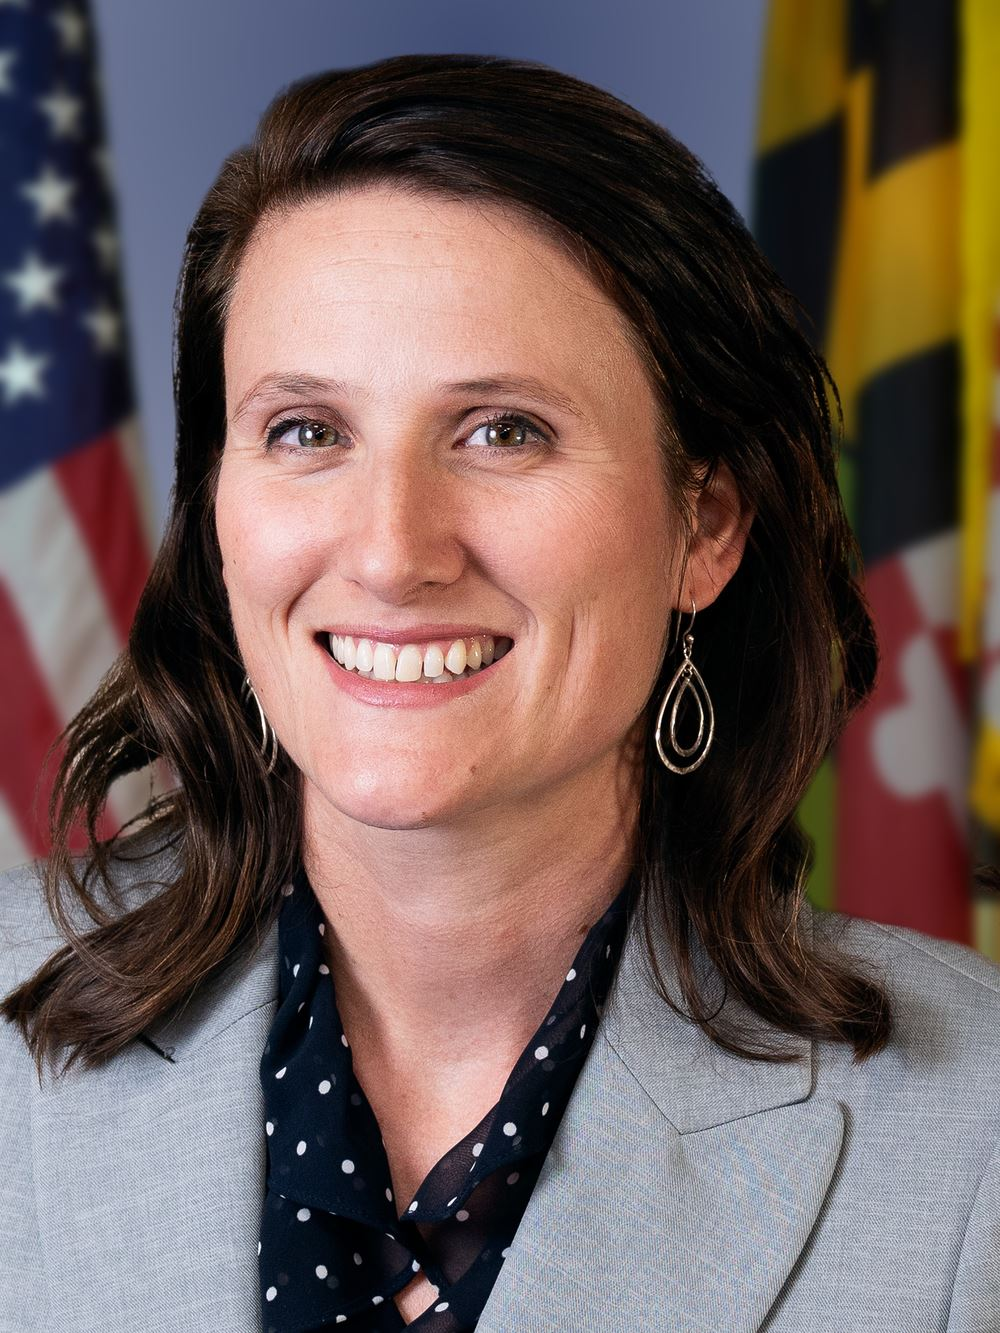 Jennifer Moreland Community Resources Director Headshot